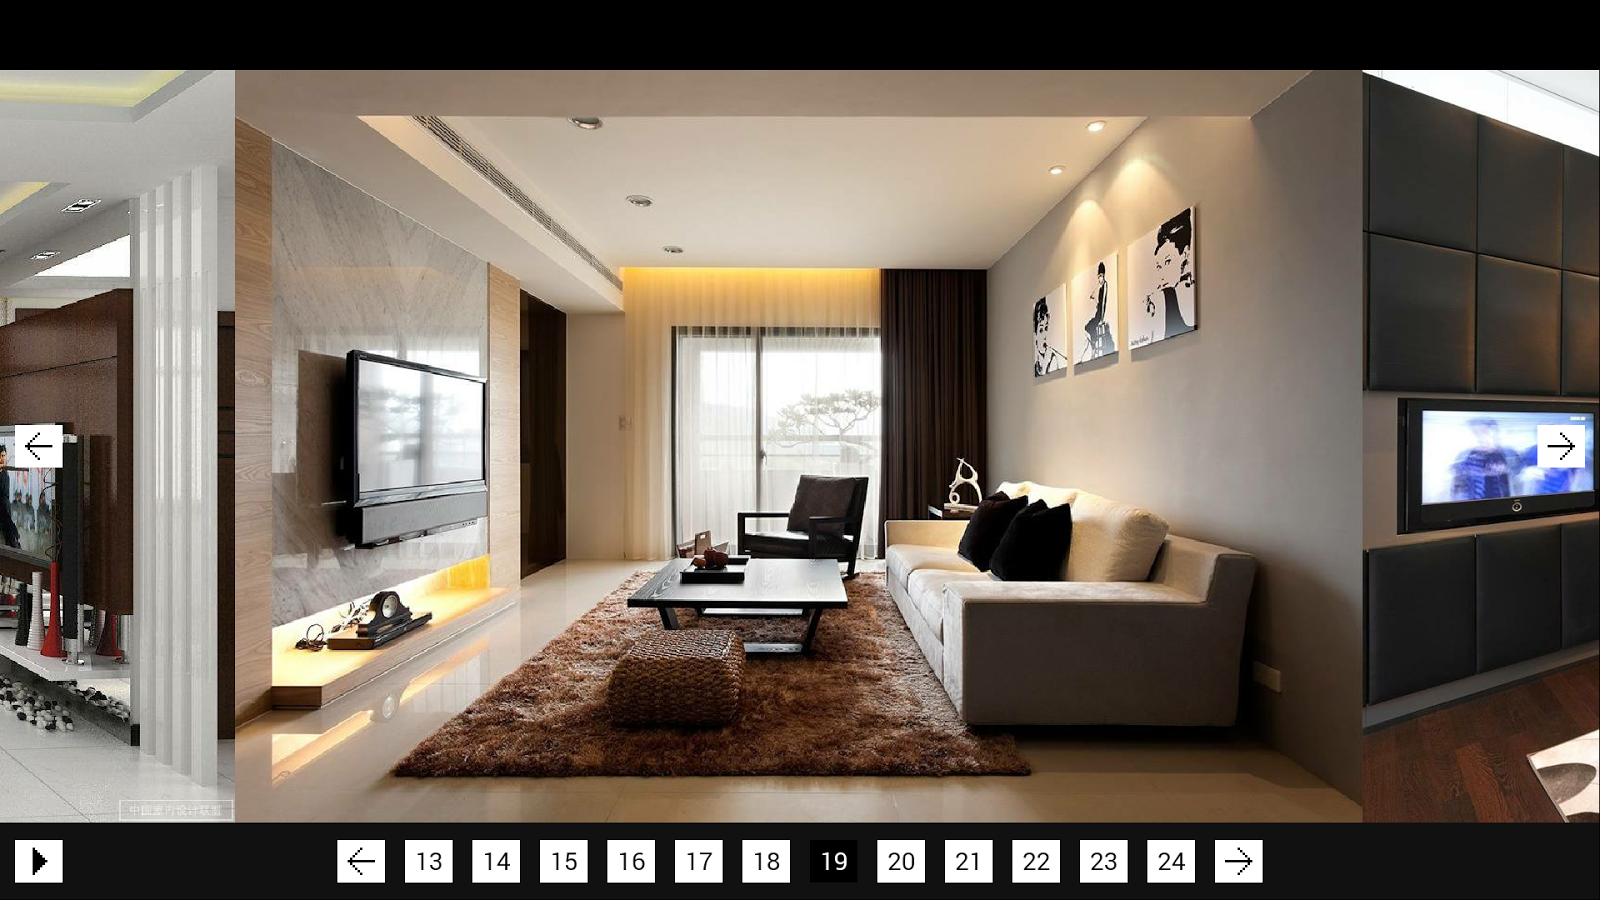 Home Decorating Apps top interior design apps vancouver homes. virtual decor interior